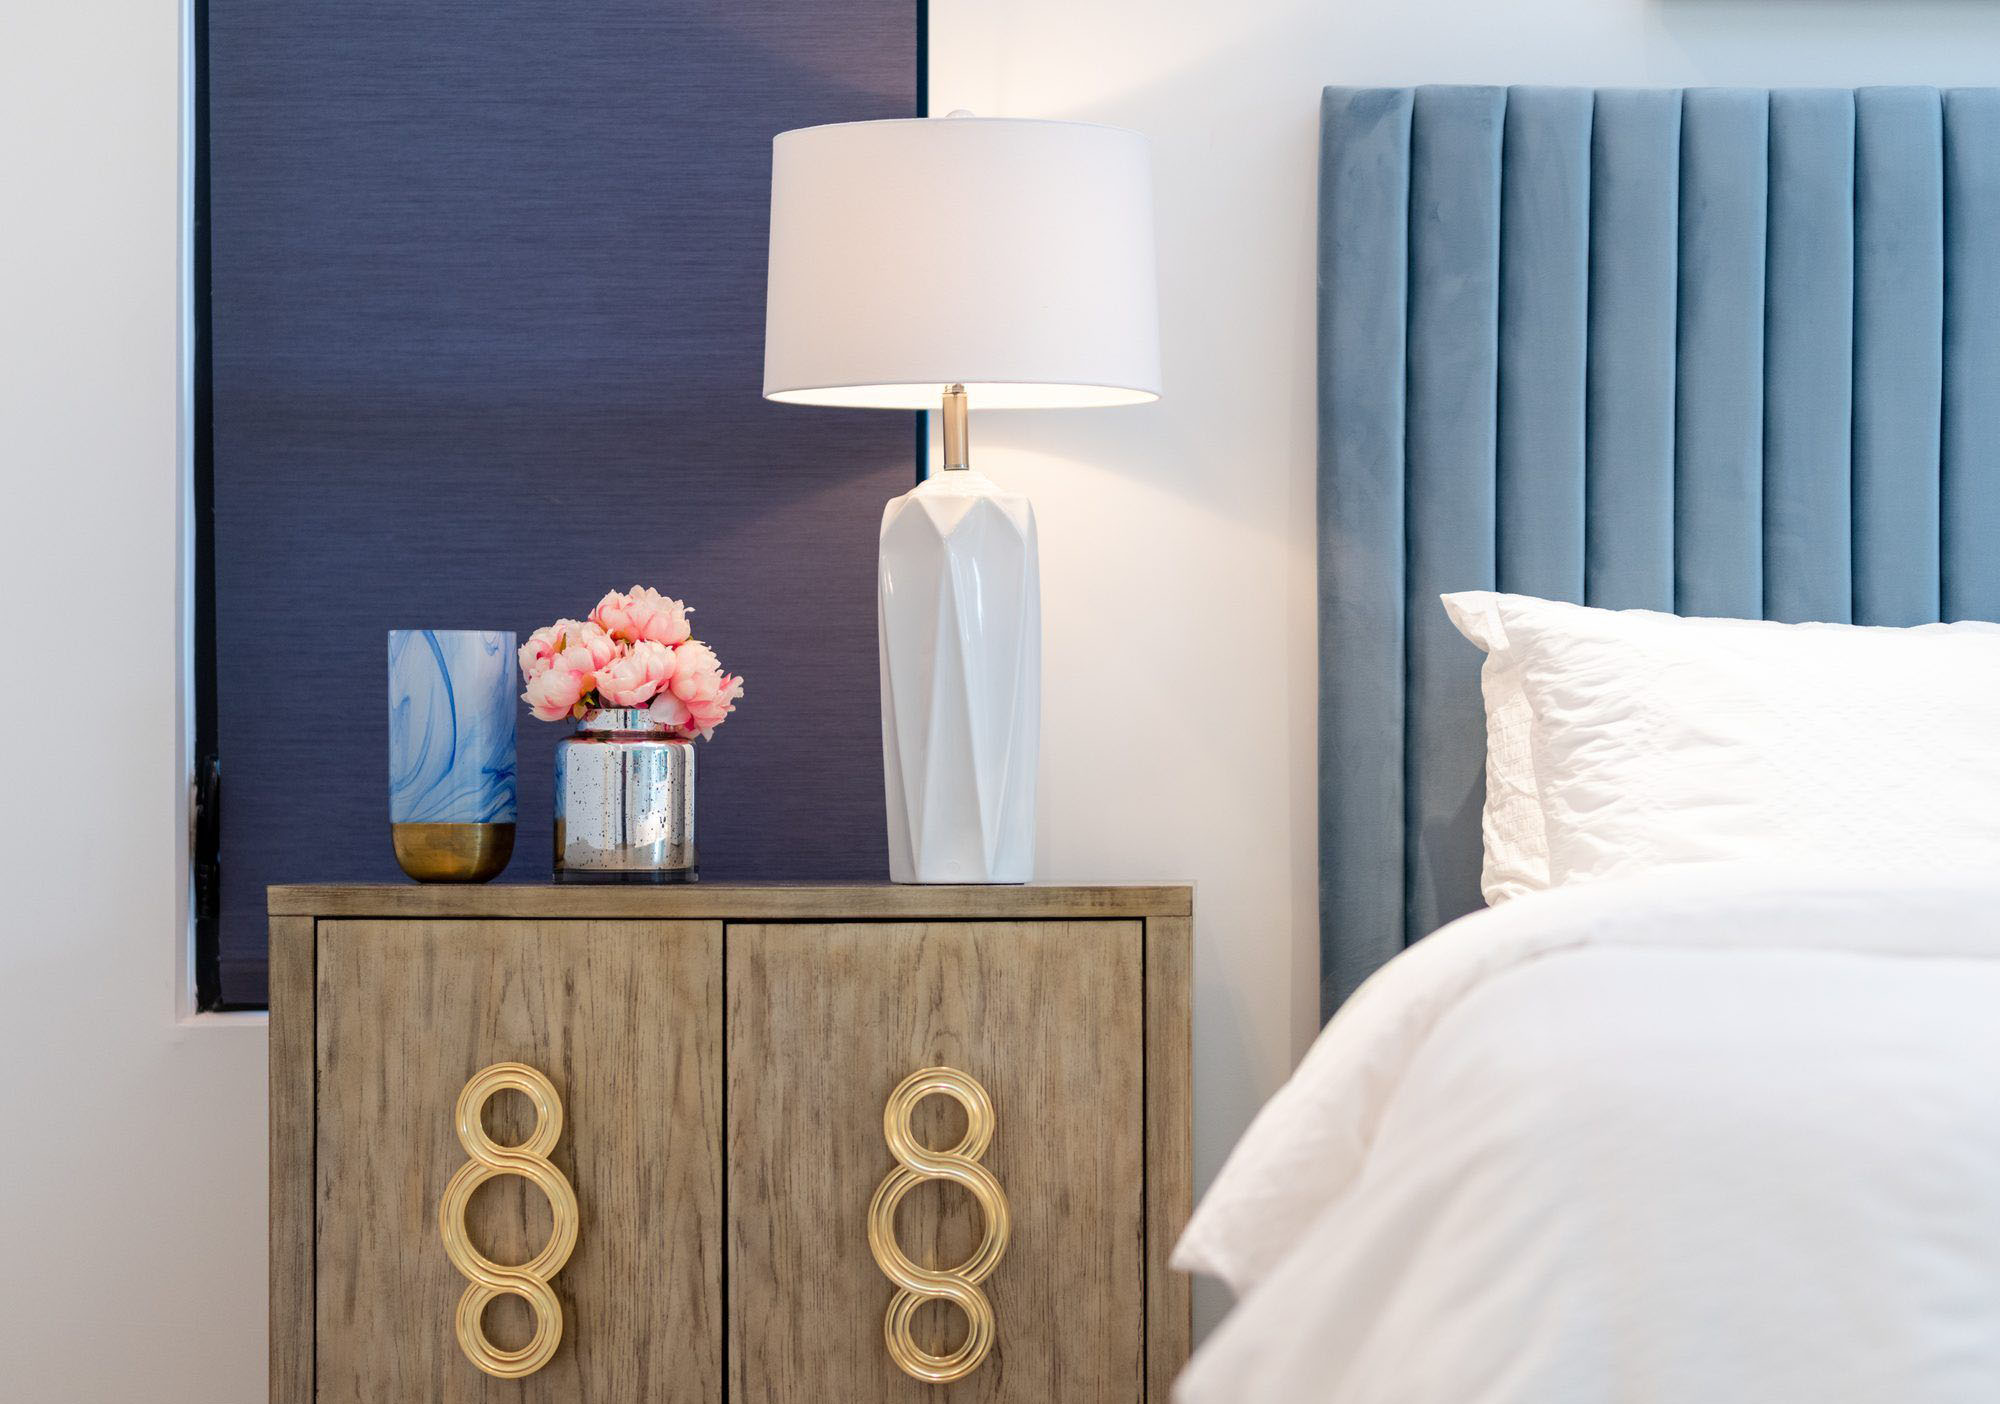 A bedside table with storage can add a lot of style and functionality to a small bedroom.